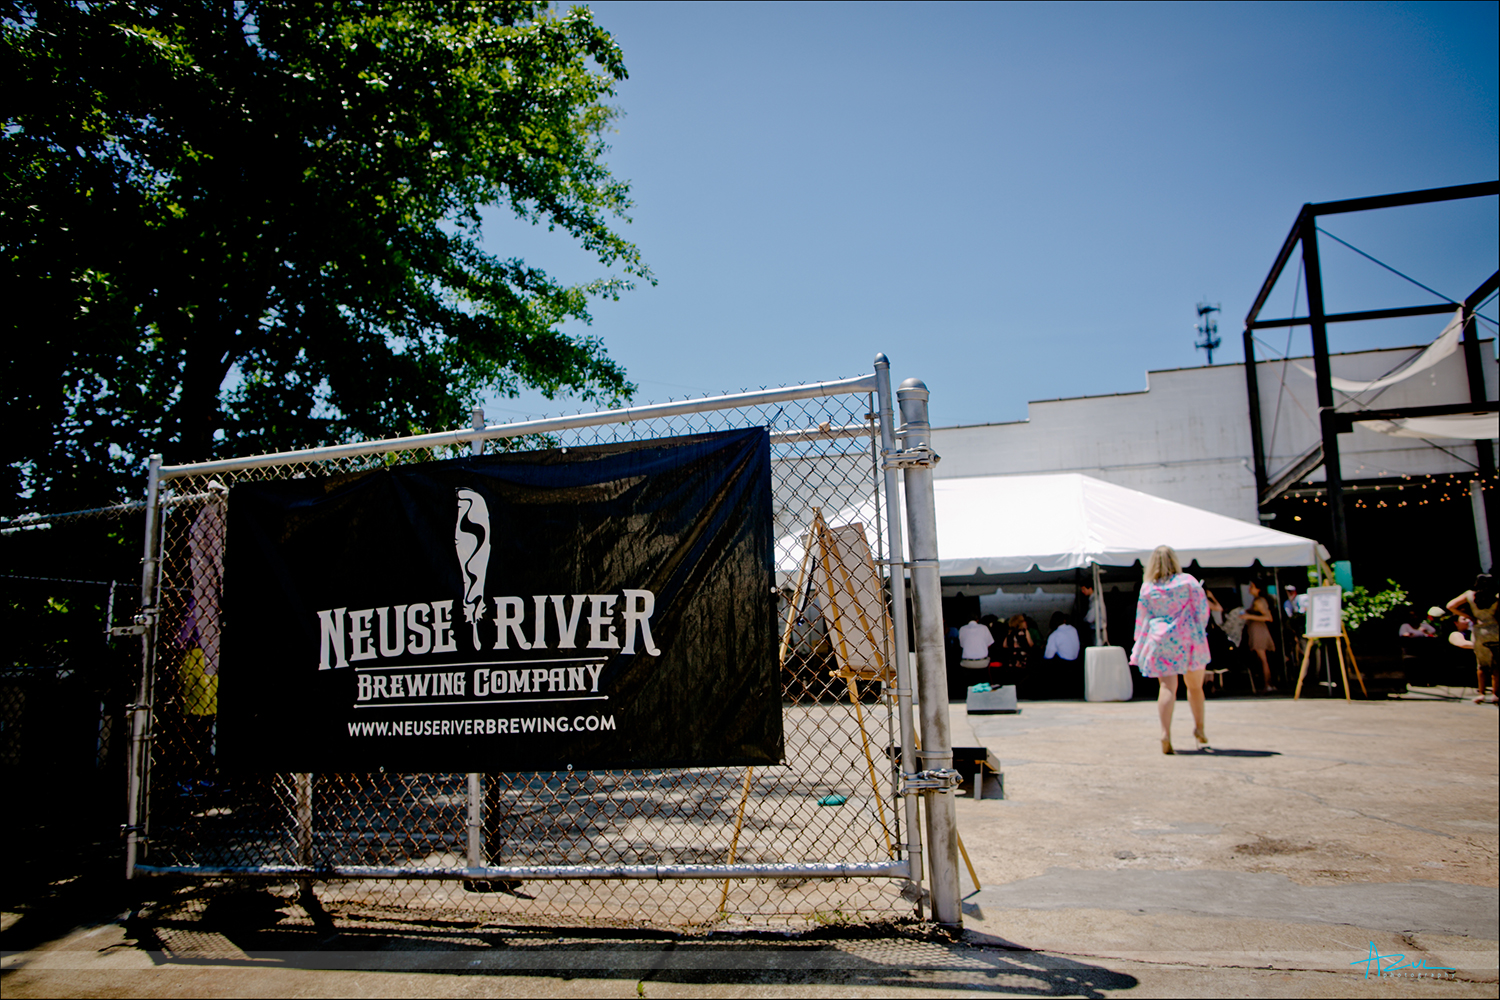 Fun wedding reception location was at Neuse River Brewing Company in Raleigh